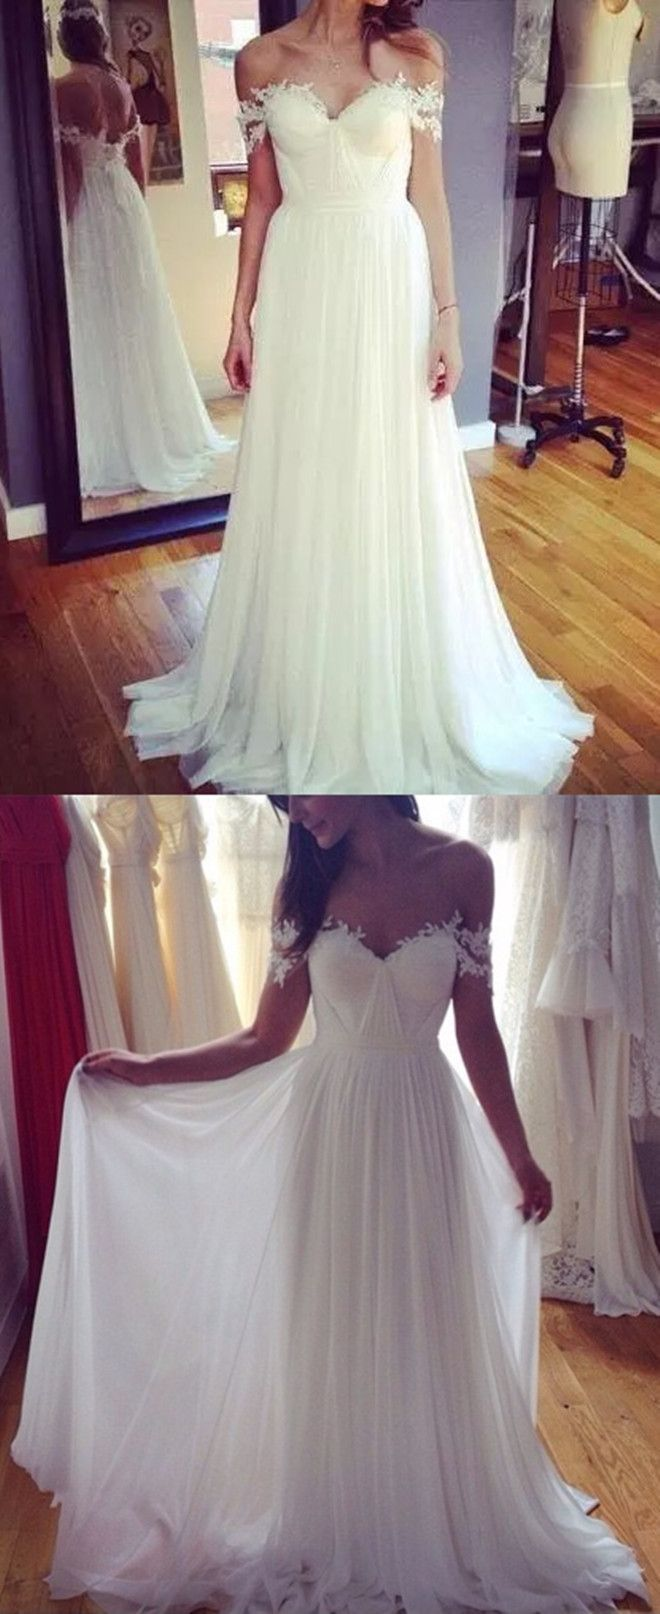 Best 10 beach wedding dresses cheap ideas on pinterest cheap simple wedding dressescheap wedding dressesbeach wedding dresseslace wedding dresses ombrellifo Image collections